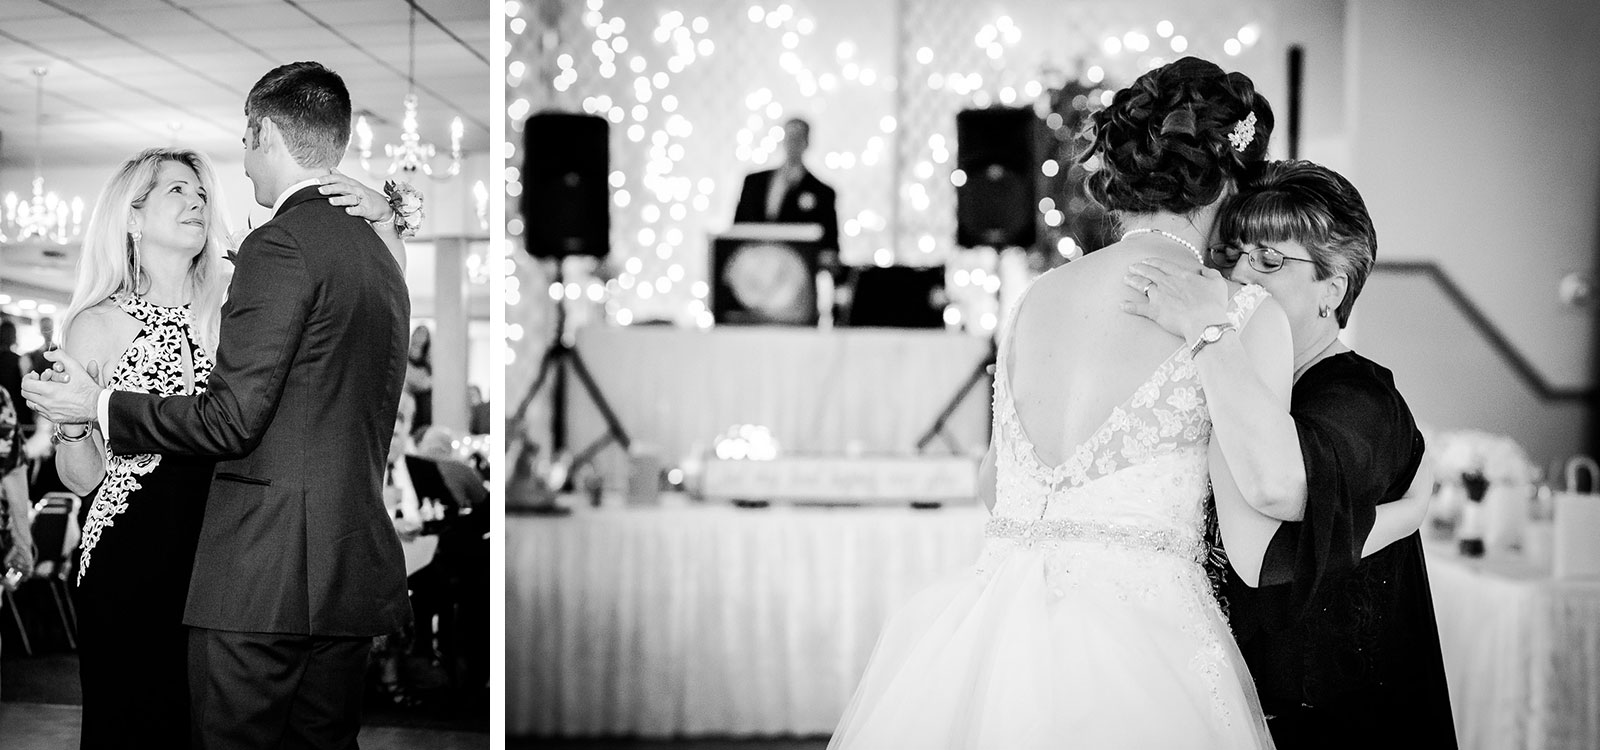 Eric_and_Christy_Photography_Blog_Wedding_Kelly_Michael-51-52